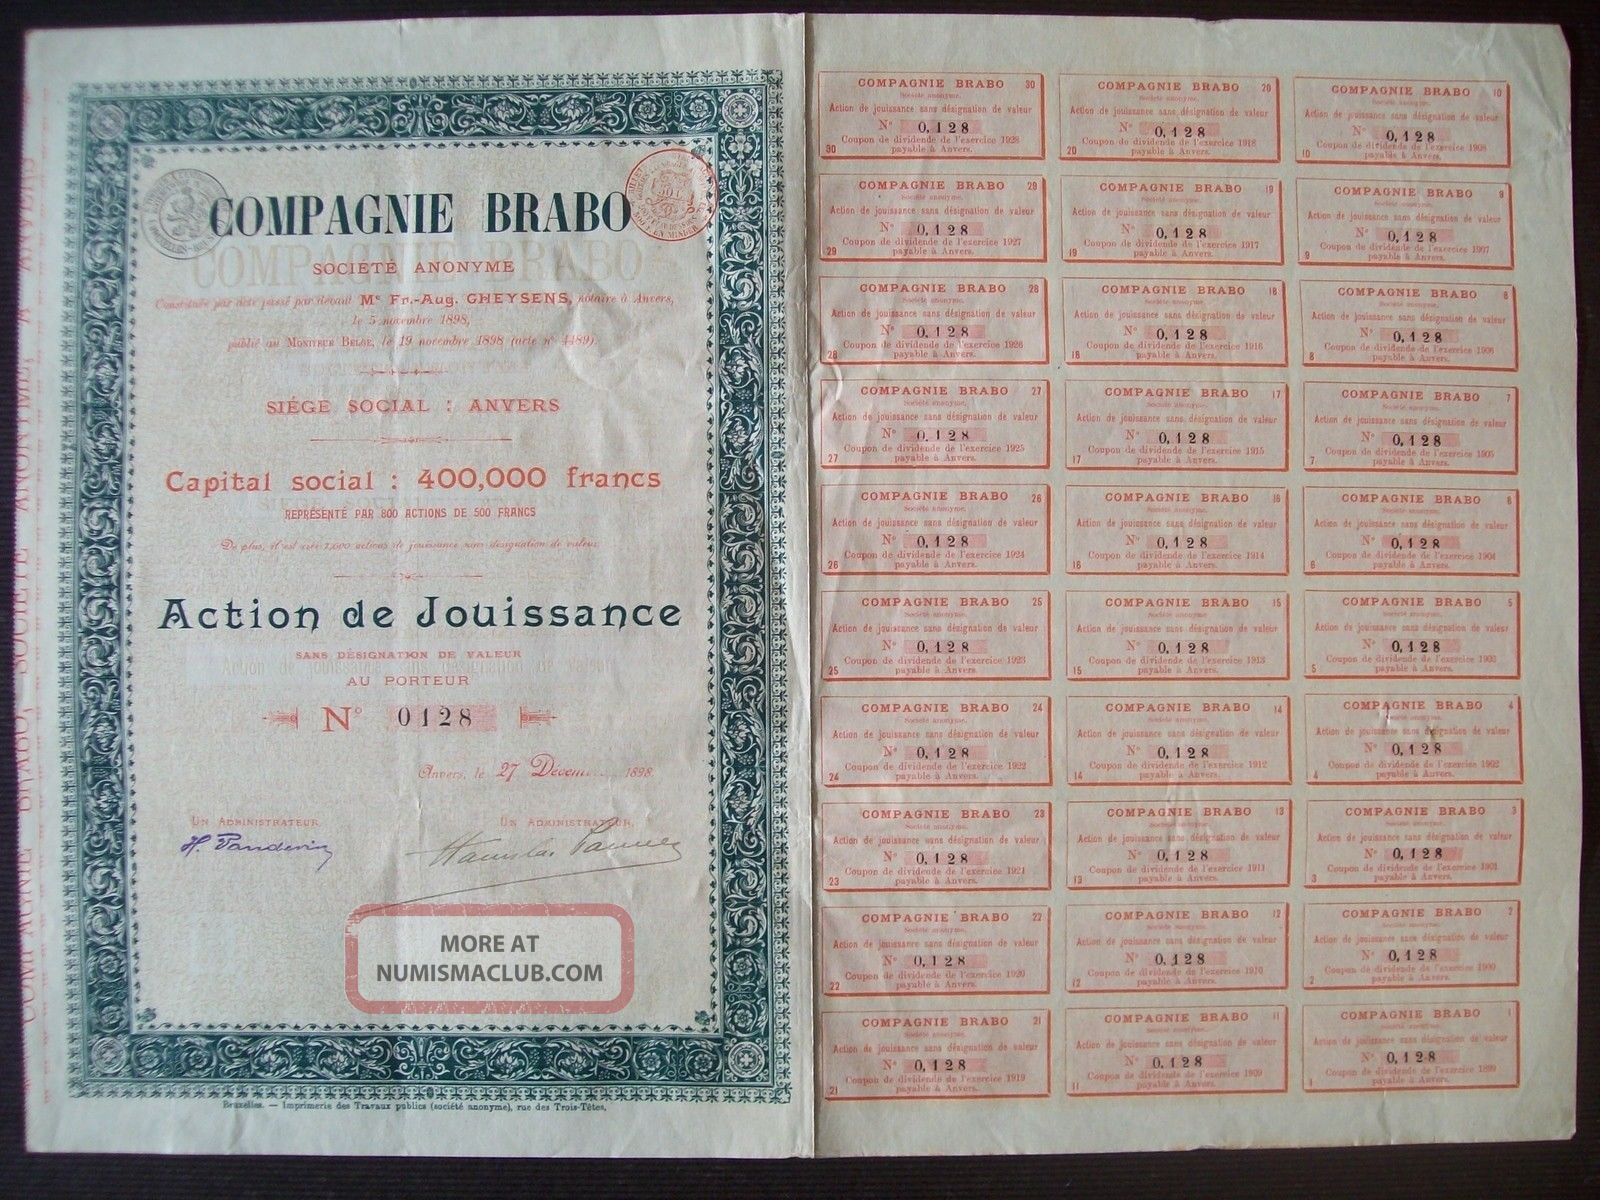 Belgium 1898 Bond With Coupons Compagnie Brabo Anvers - Tabac Tobacco.  R4040 World photo